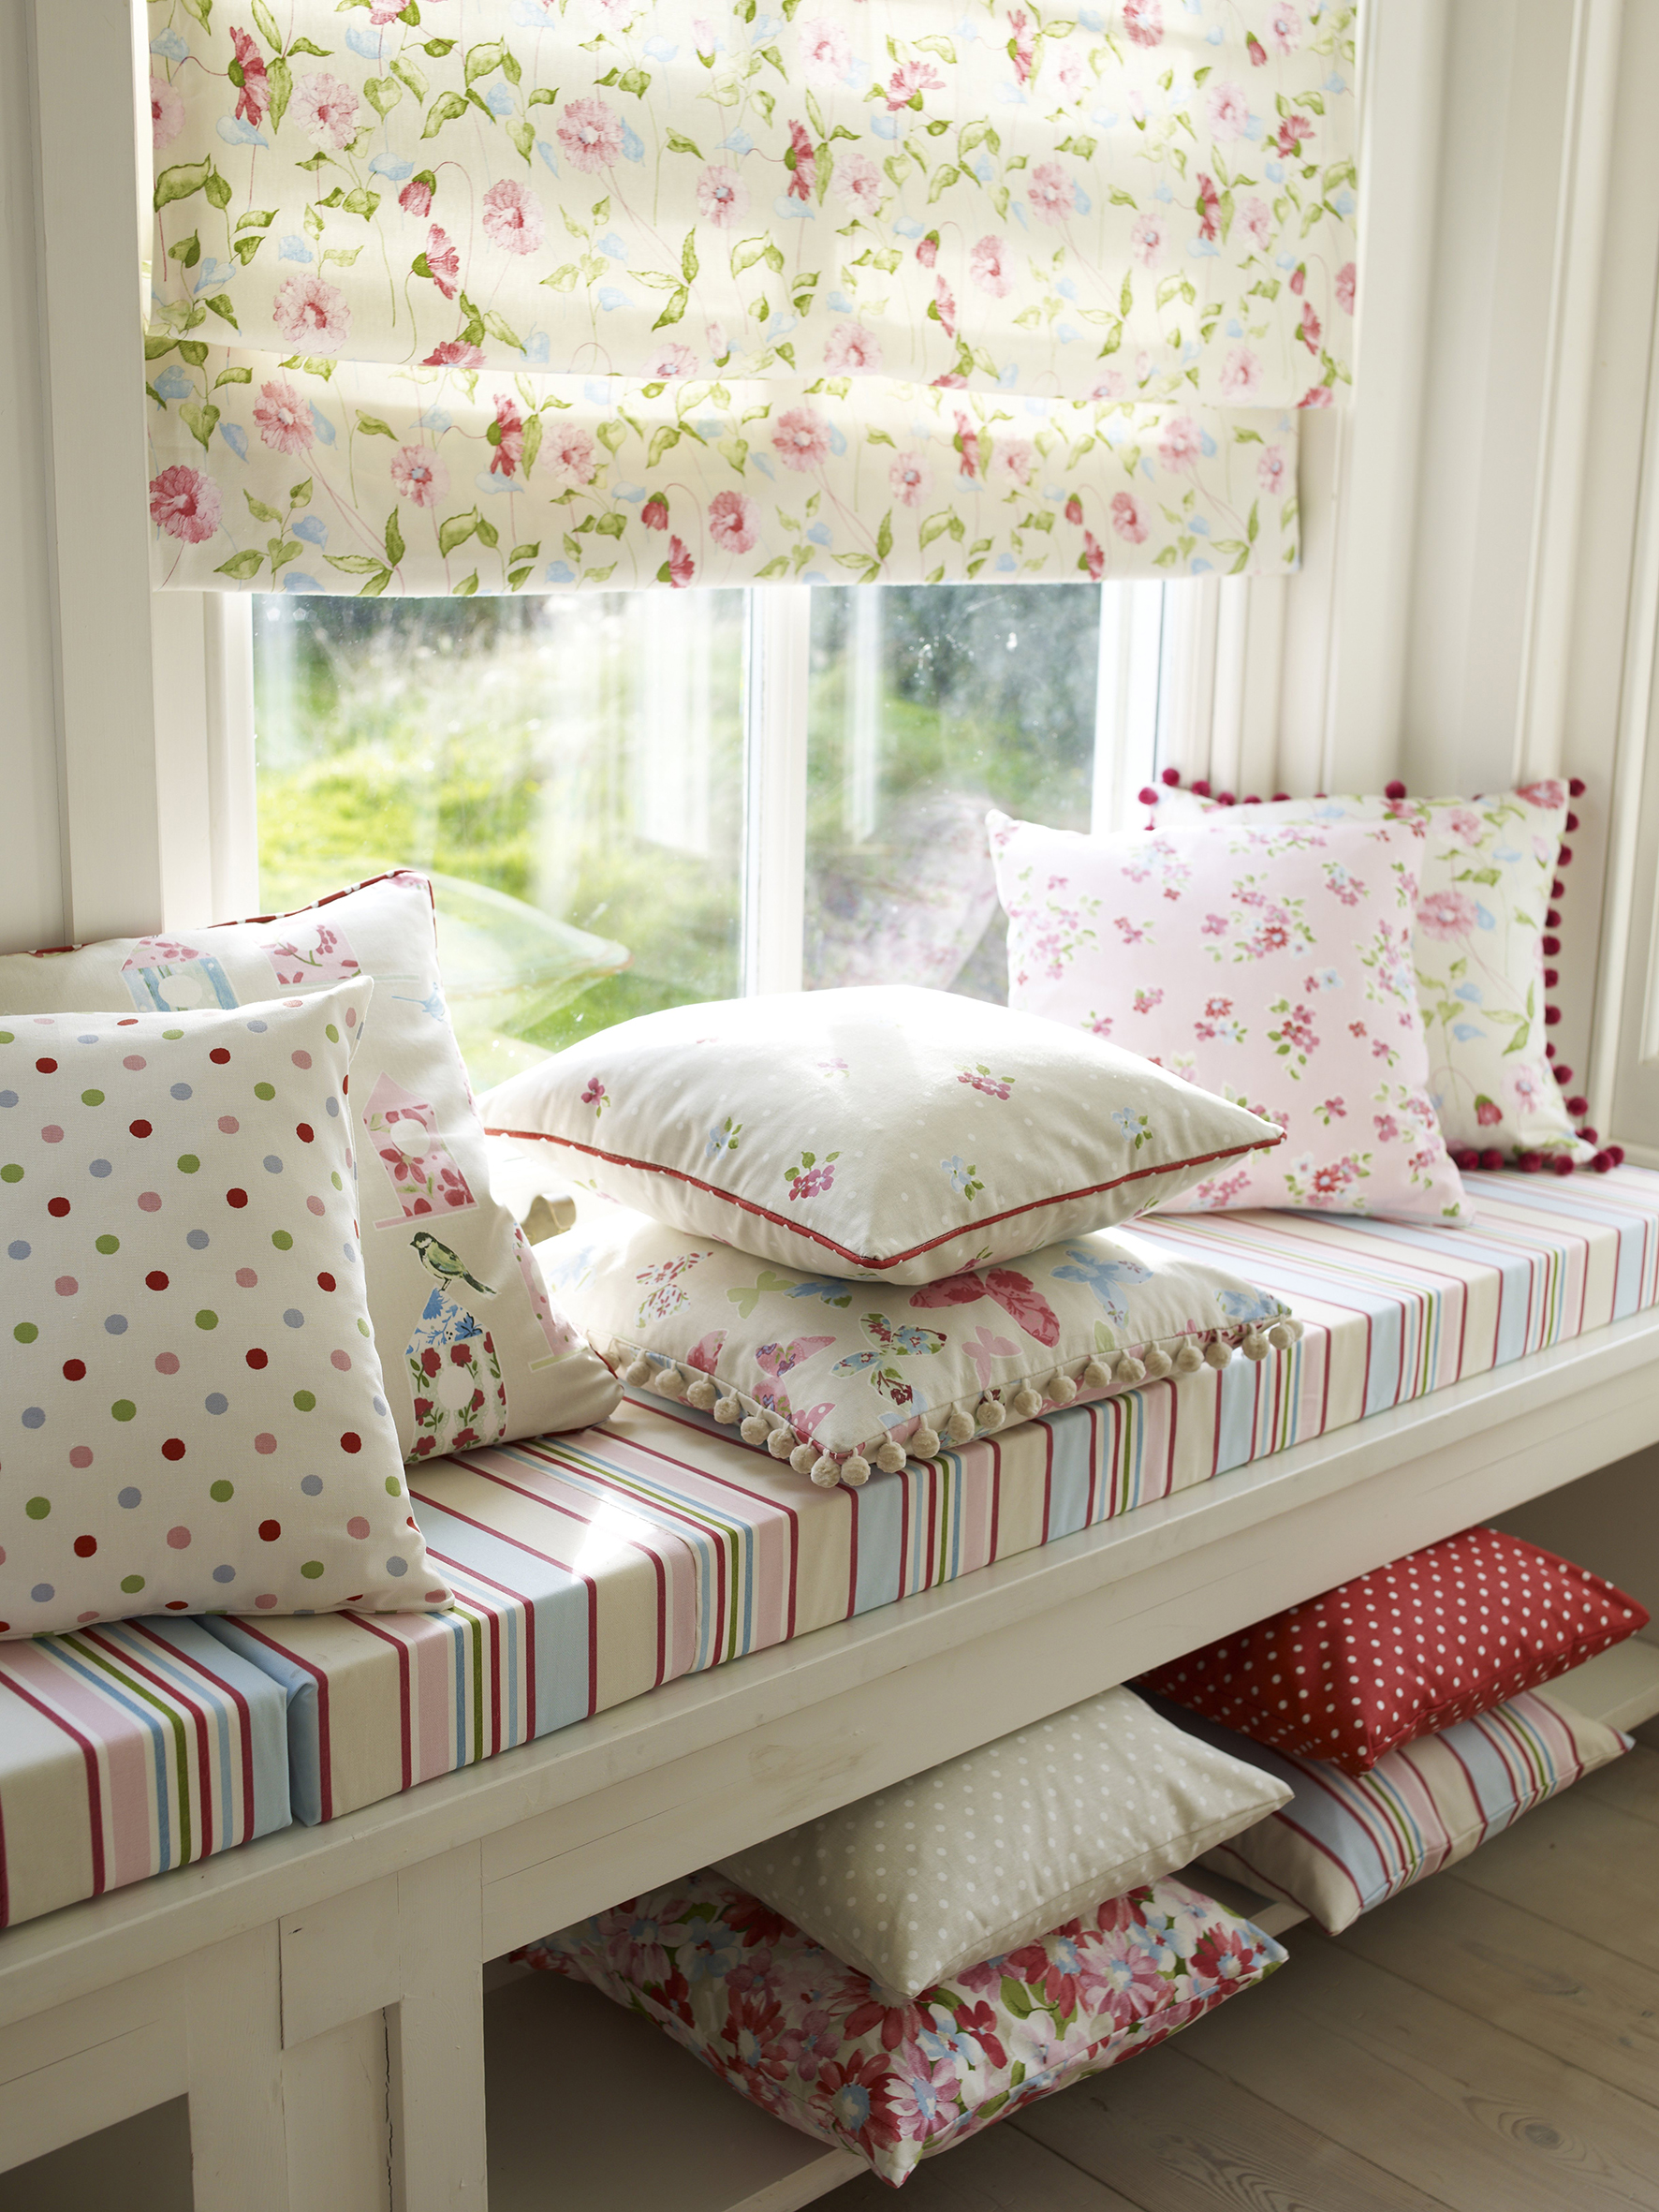 6 Patterned Roman Blinds Perfect For Easter Roman Blinds